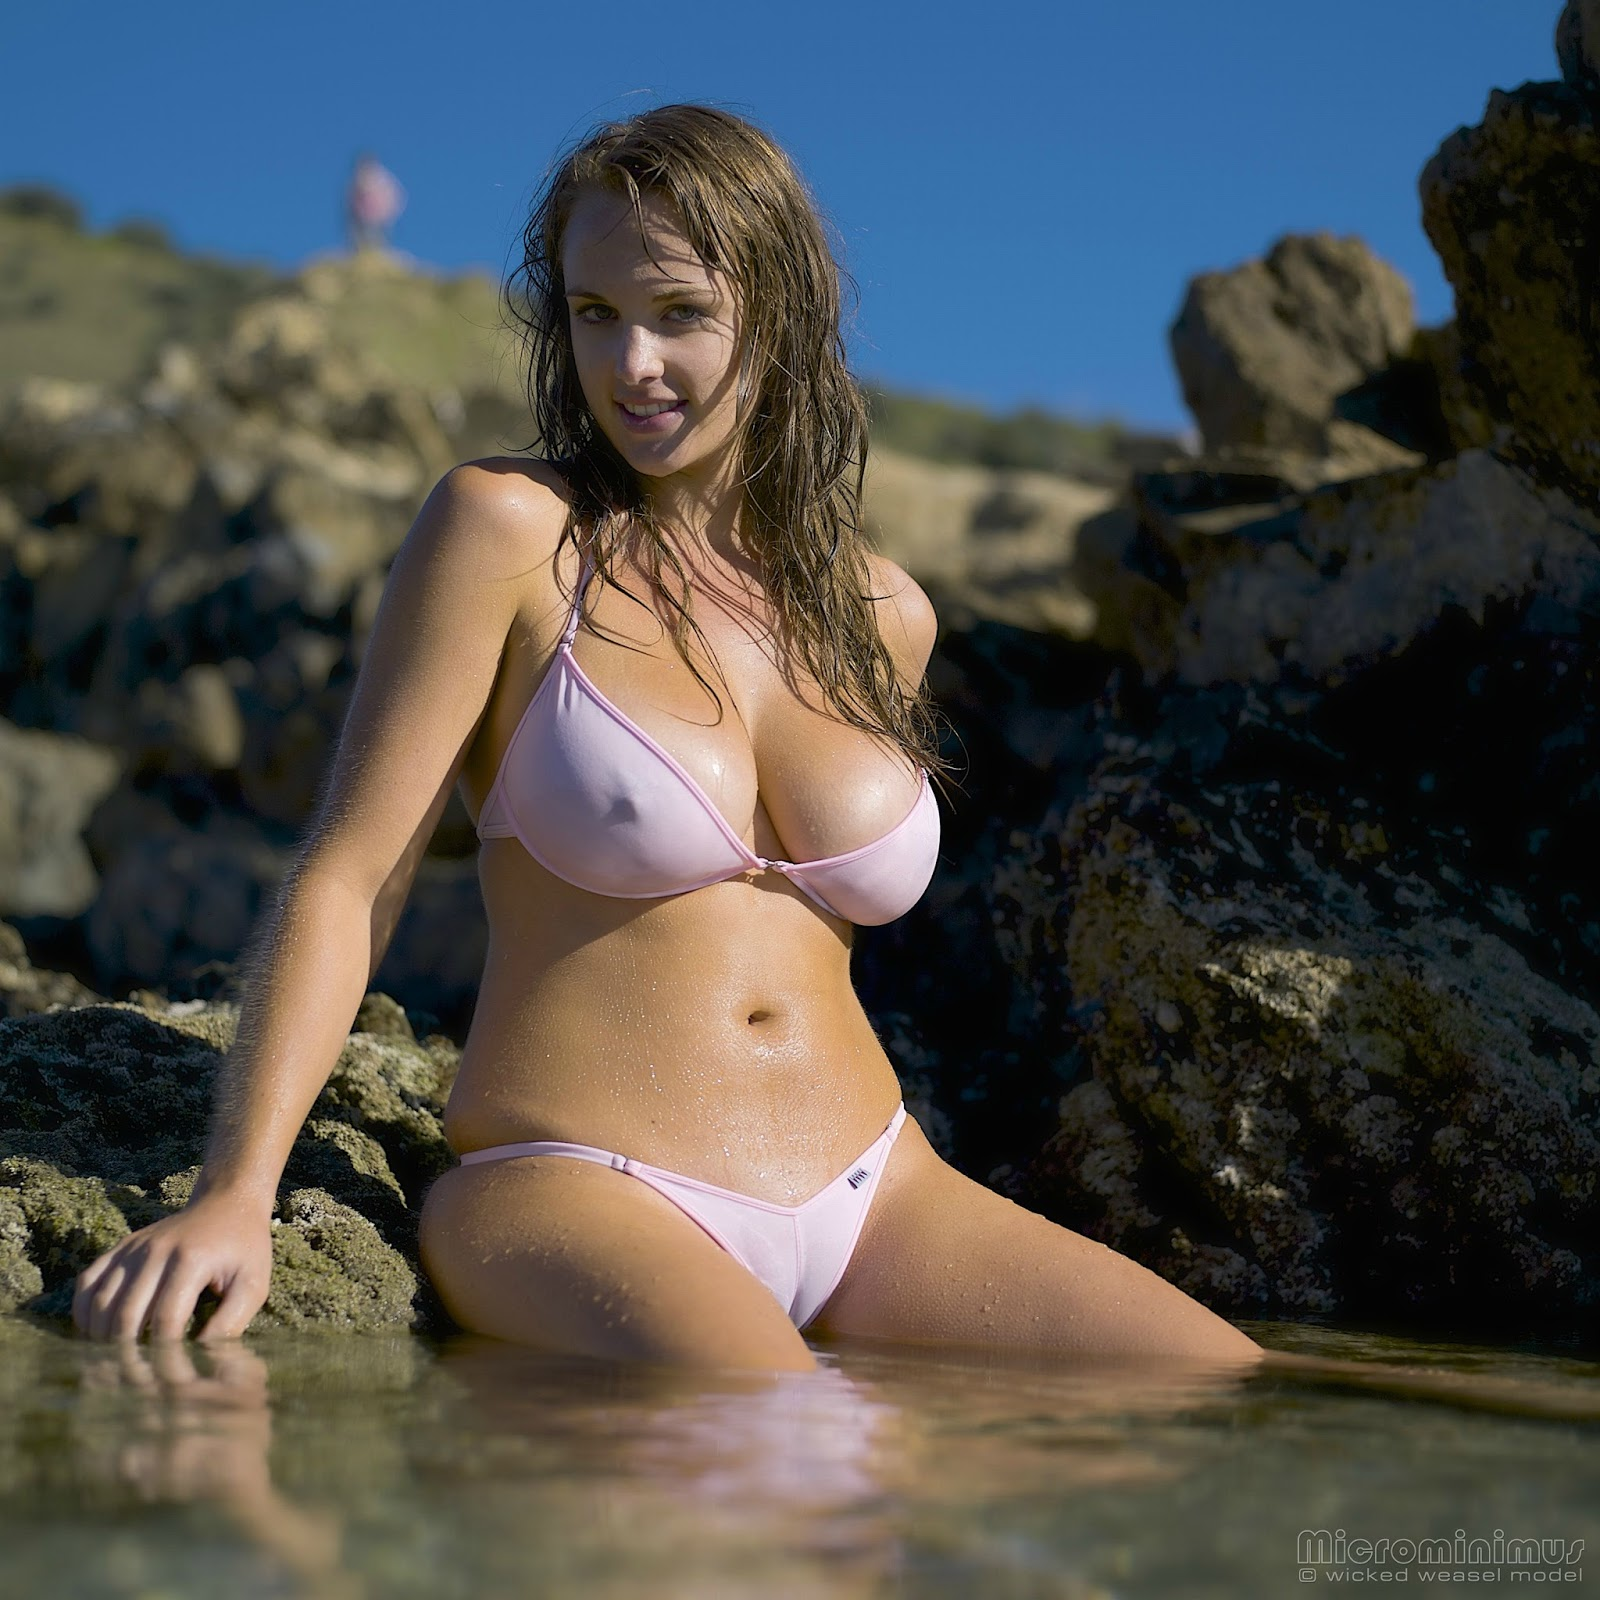 Know, how wicked weasel bikini models